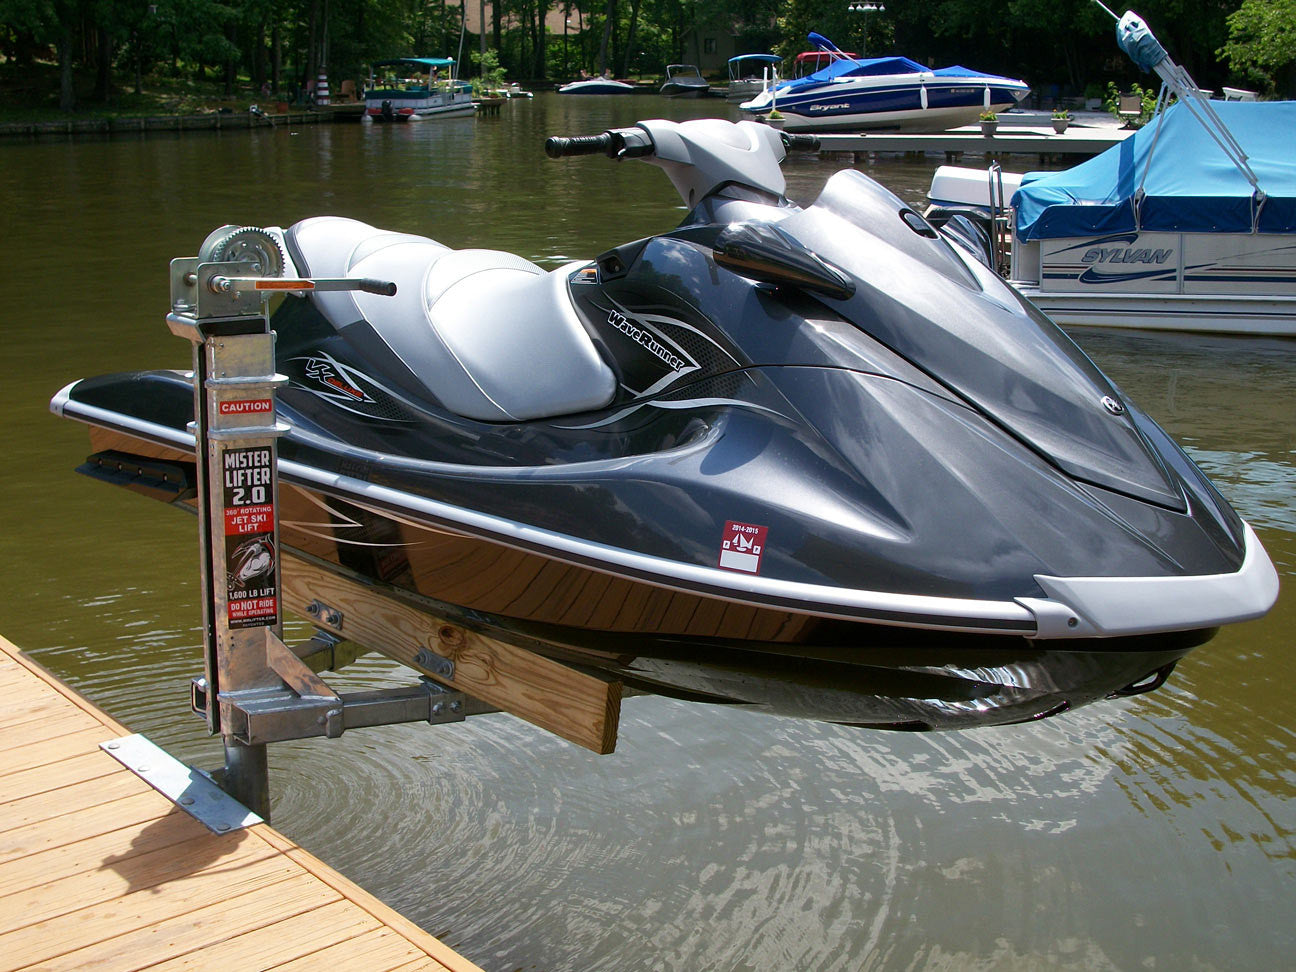 Mr Lifter Jet Ski Lift American Muscle Docks